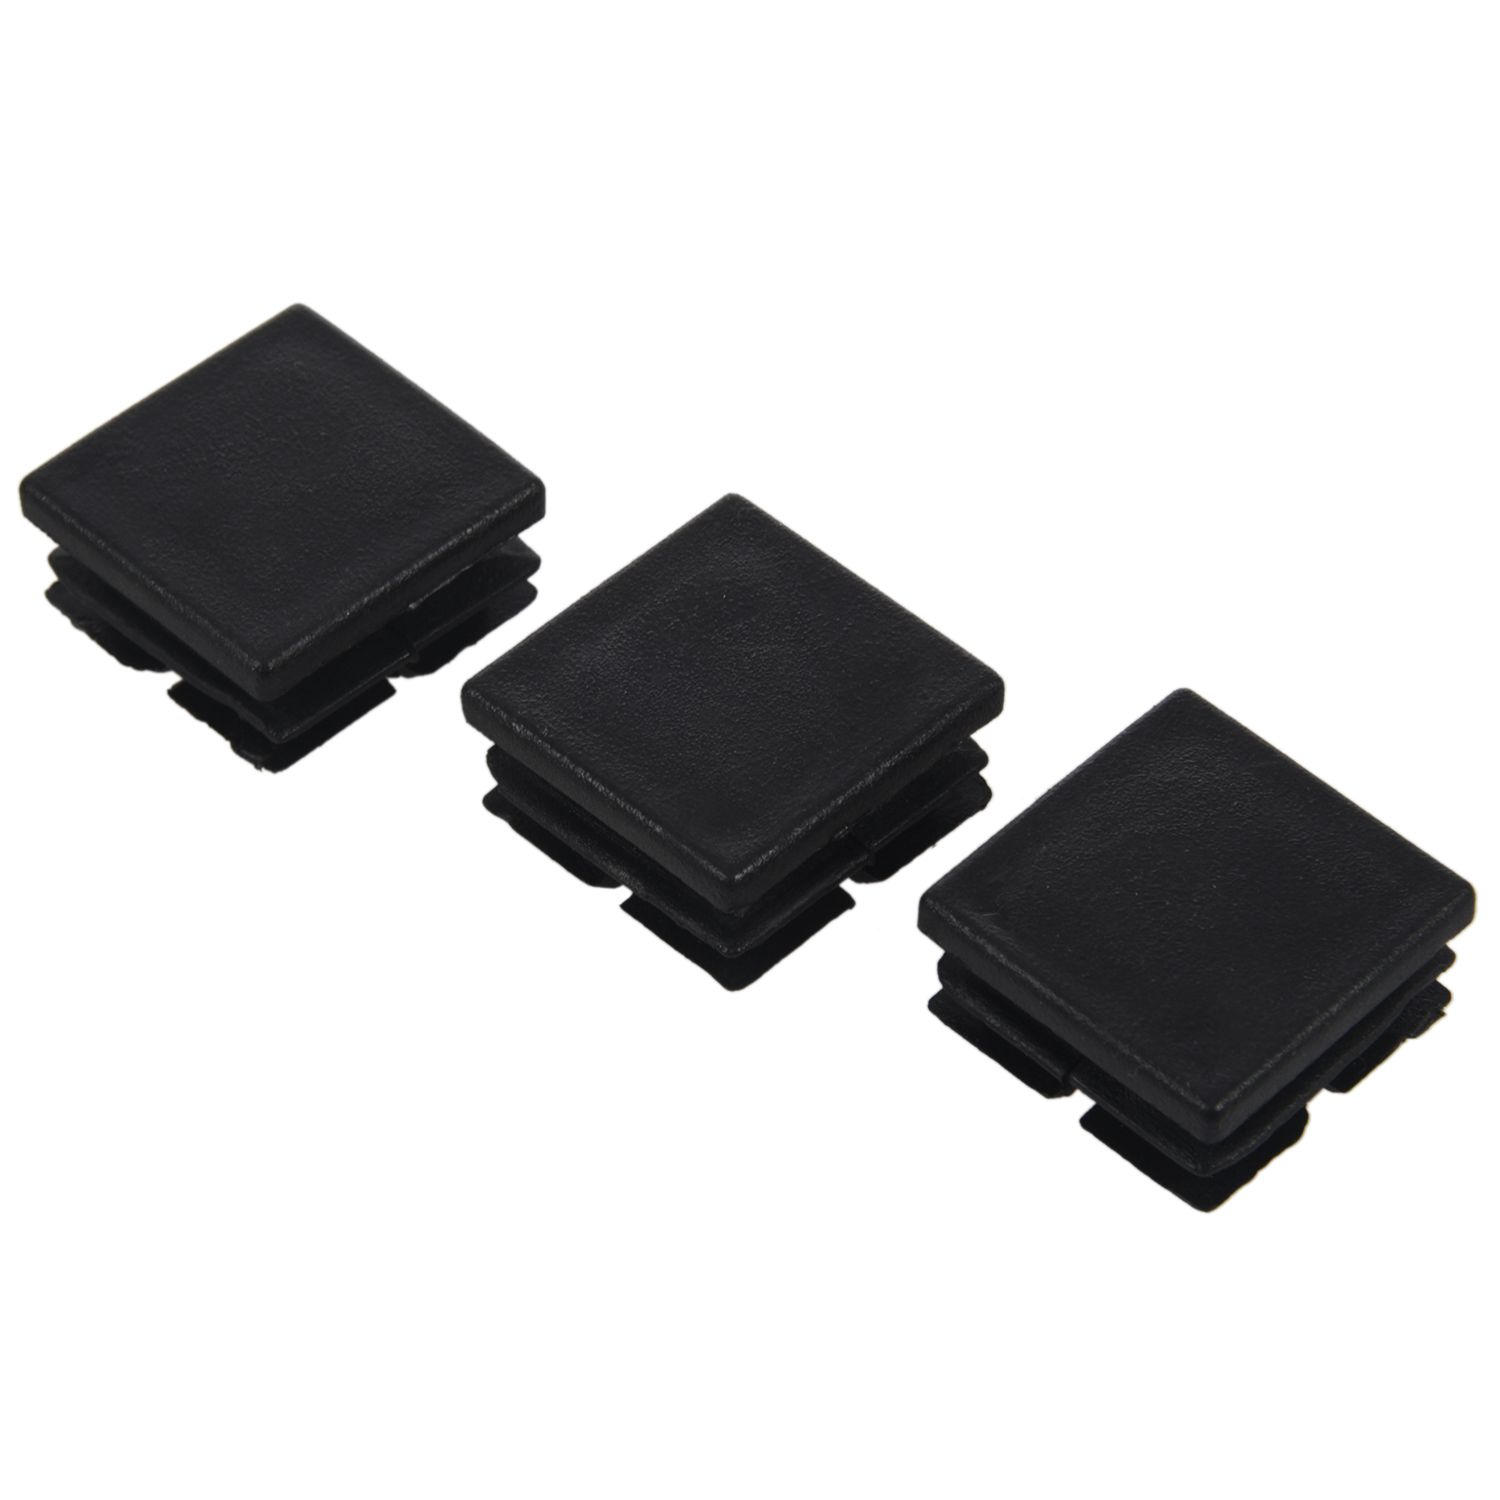 Promotion! Square Table Chair Leg Tube Pipe Feet Insert Cap 25mmx25mm 20pcs BlackPromotion! Square Table Chair Leg Tube Pipe Feet Insert Cap 25mmx25mm 20pcs Black